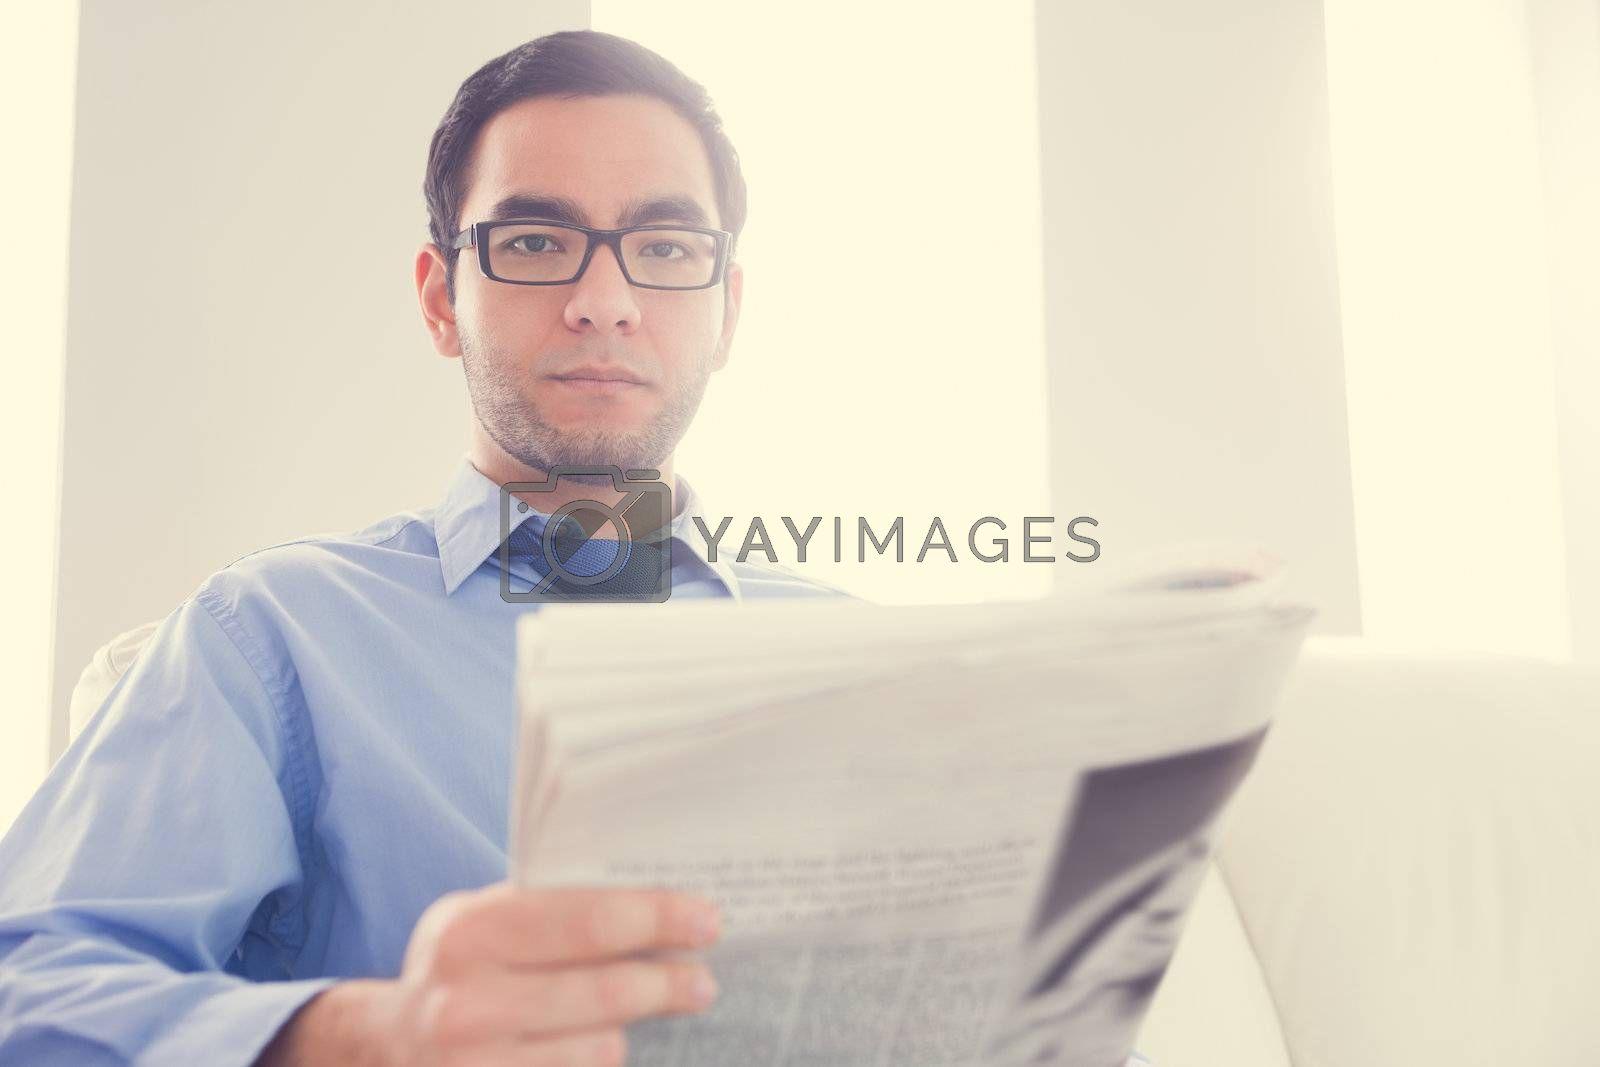 Frowning man looking at camera and holding a newspaper by Wavebreakmedia